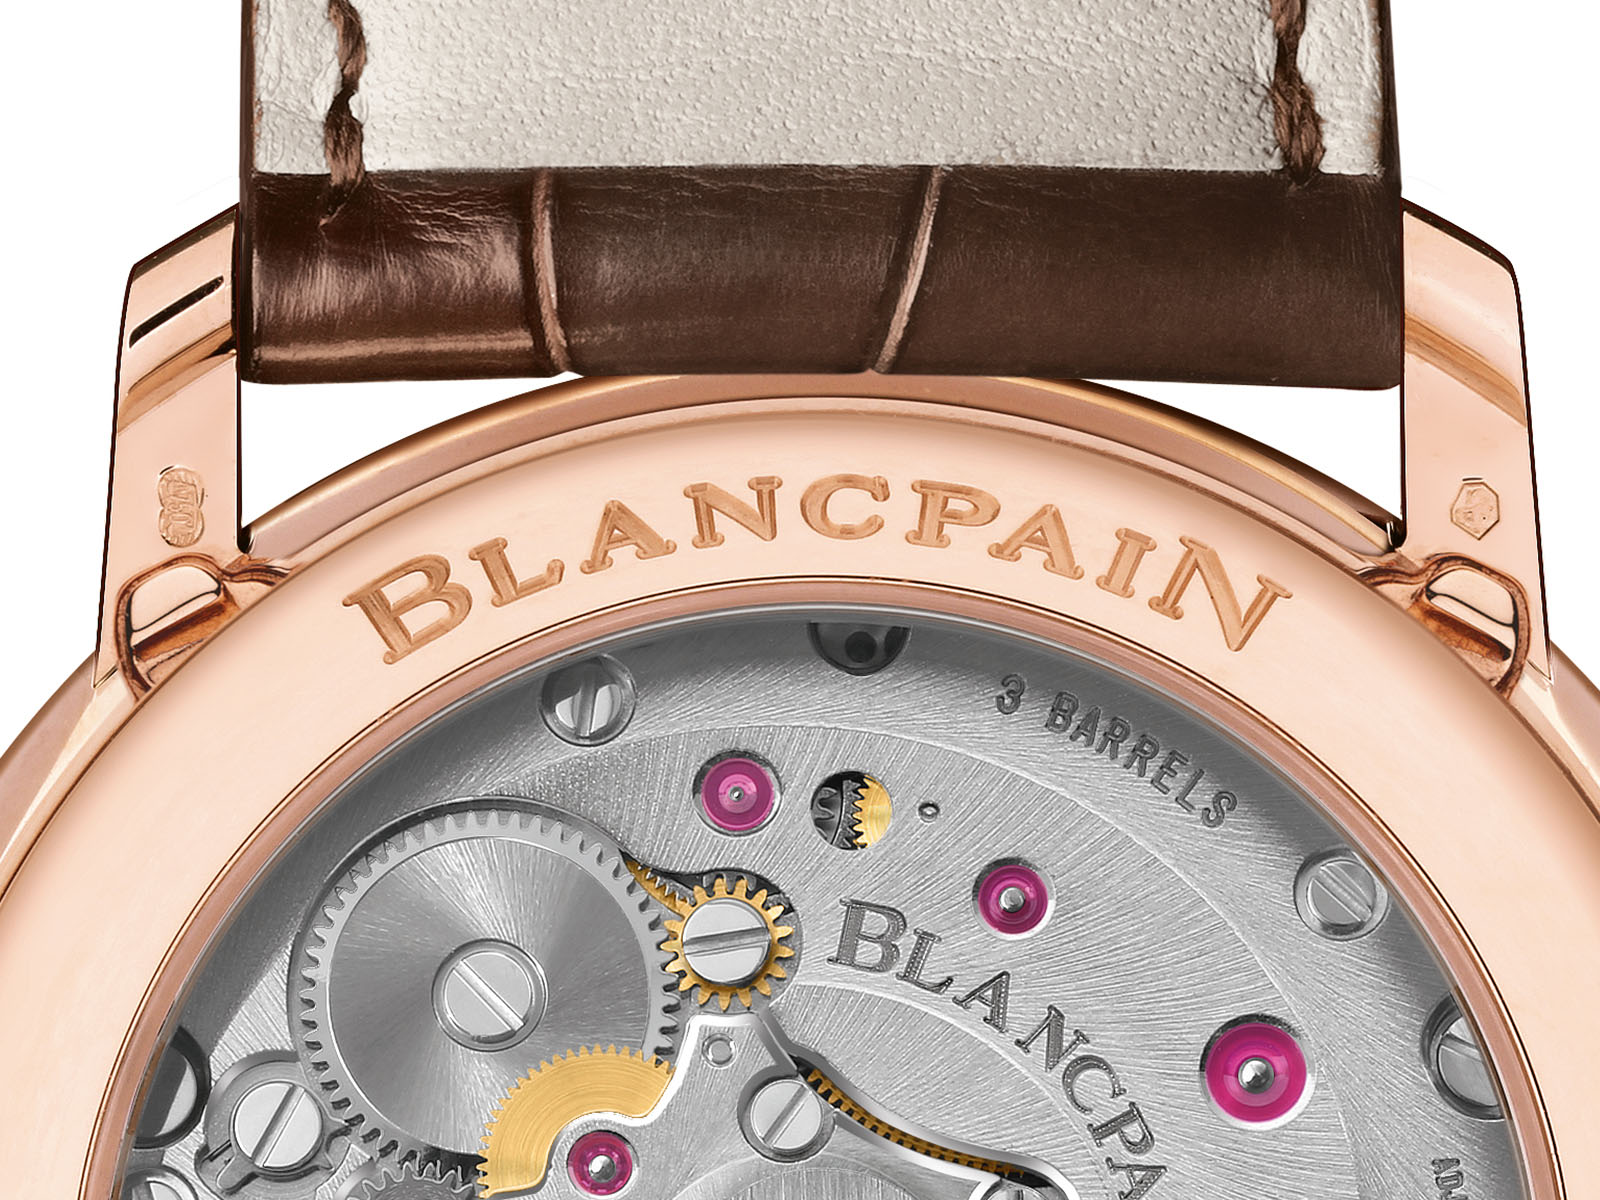 Blancpain-Villeret-Collection-6637-3631-55B-1.jpg